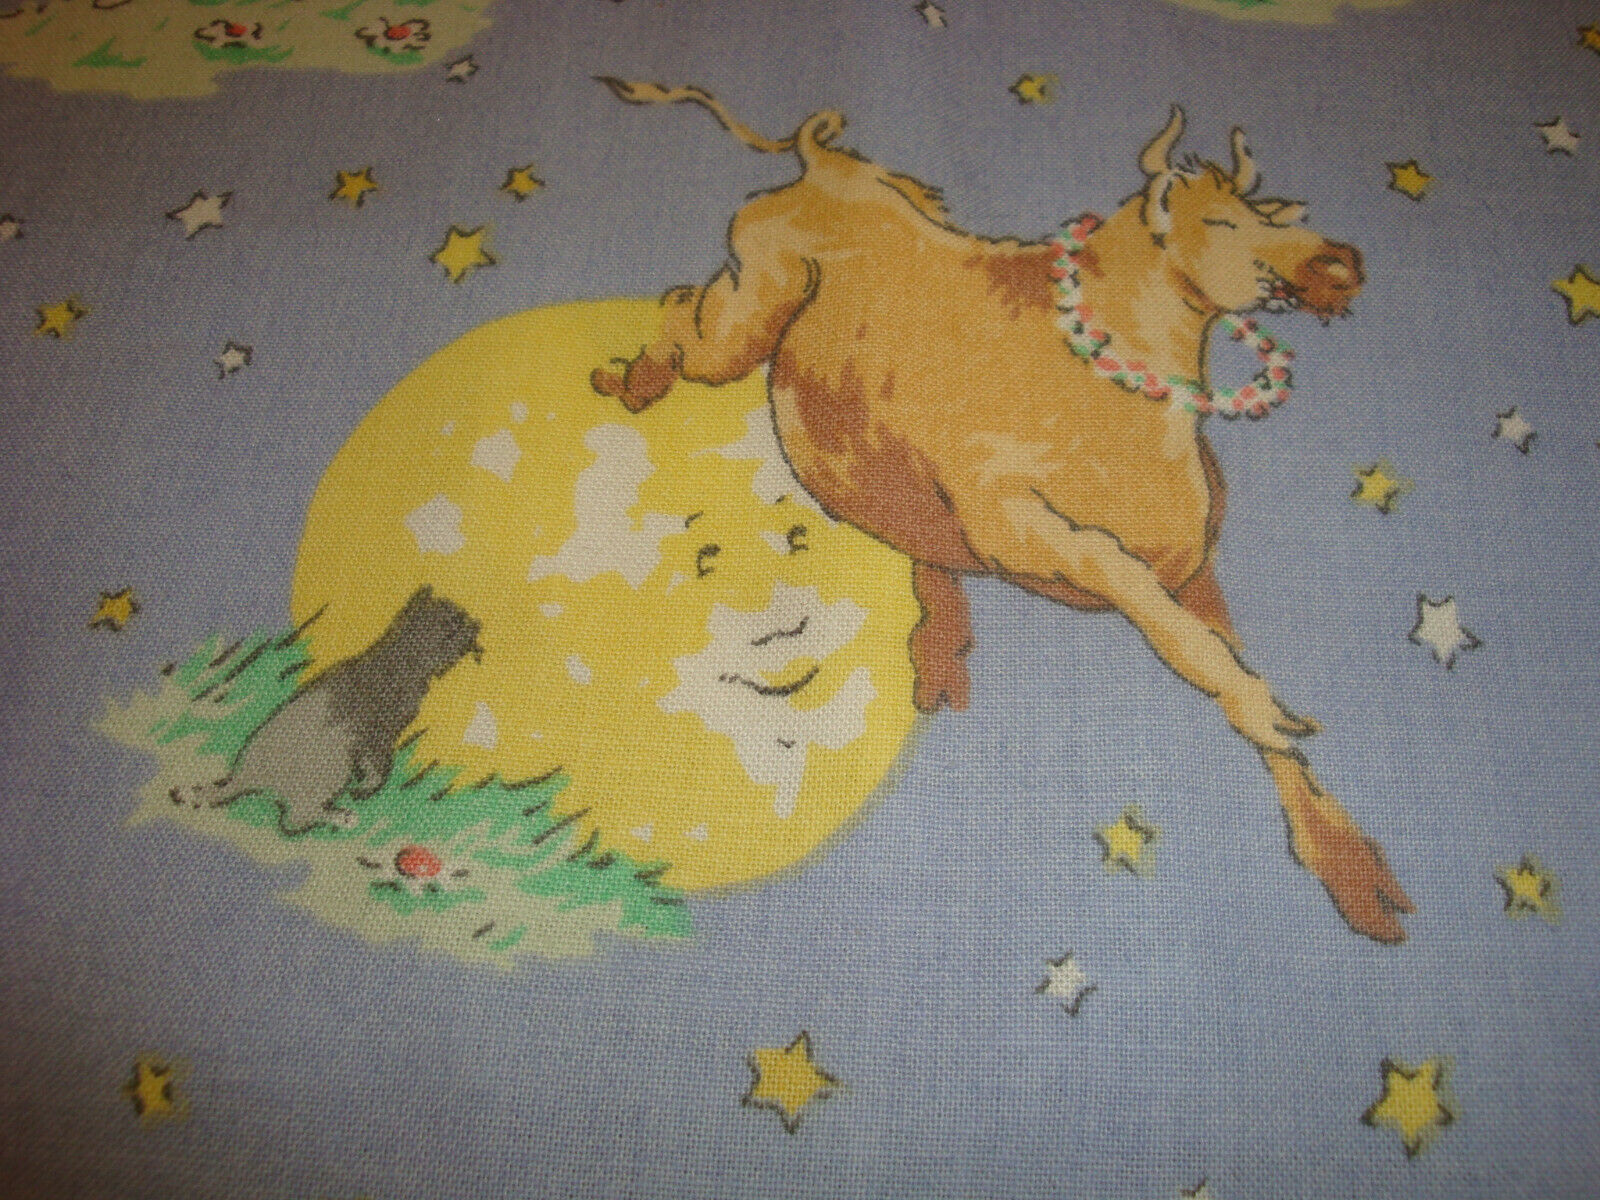 In The Beginning Hey Diddle Diddle by Julie Paschkis 6JPJ 1 Cotton Fabric